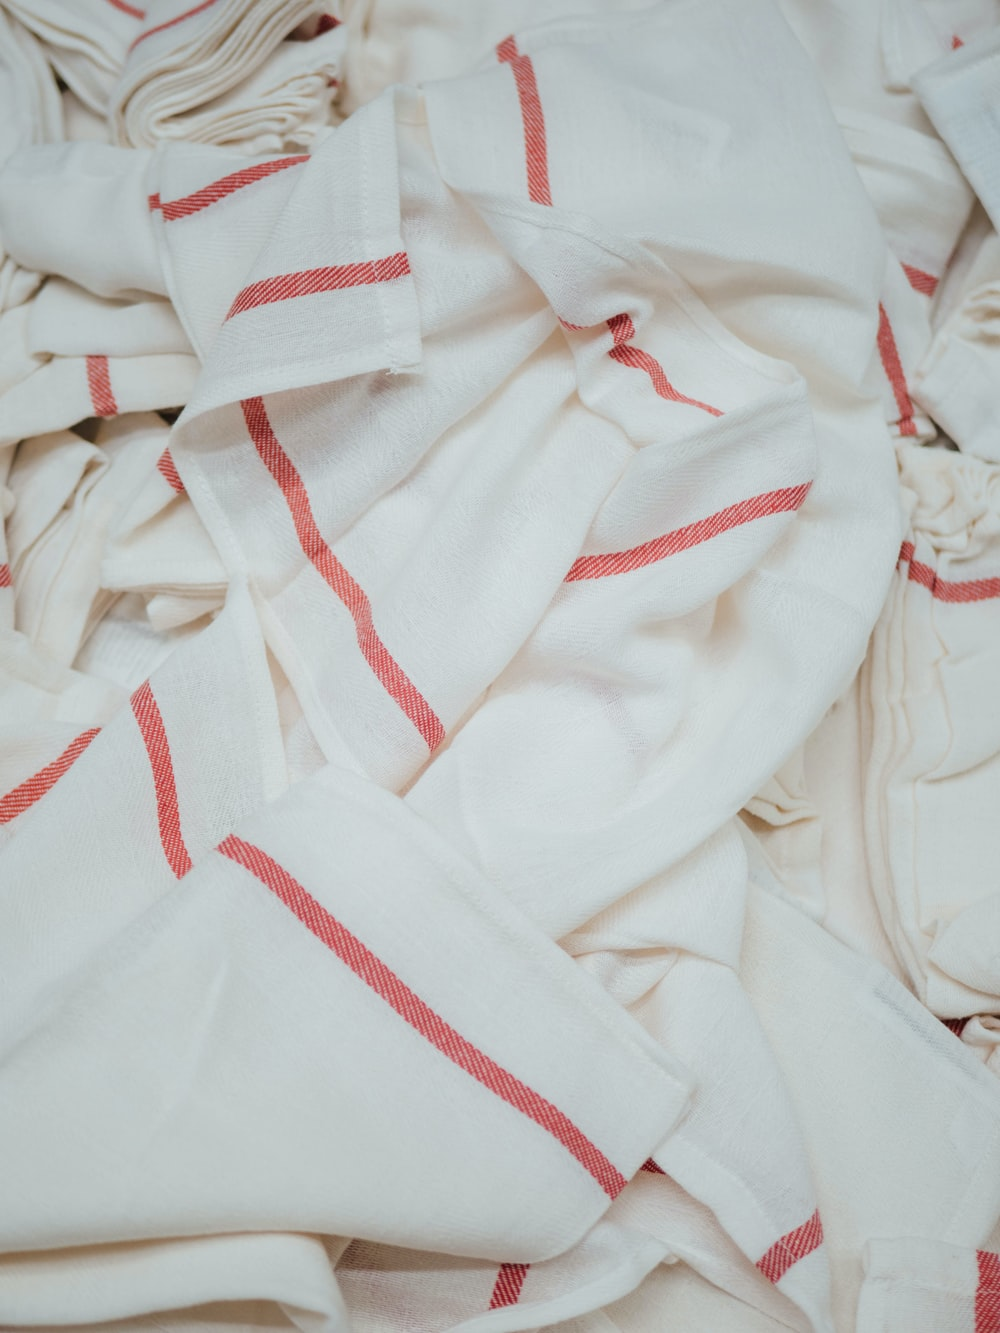 white and red textiles